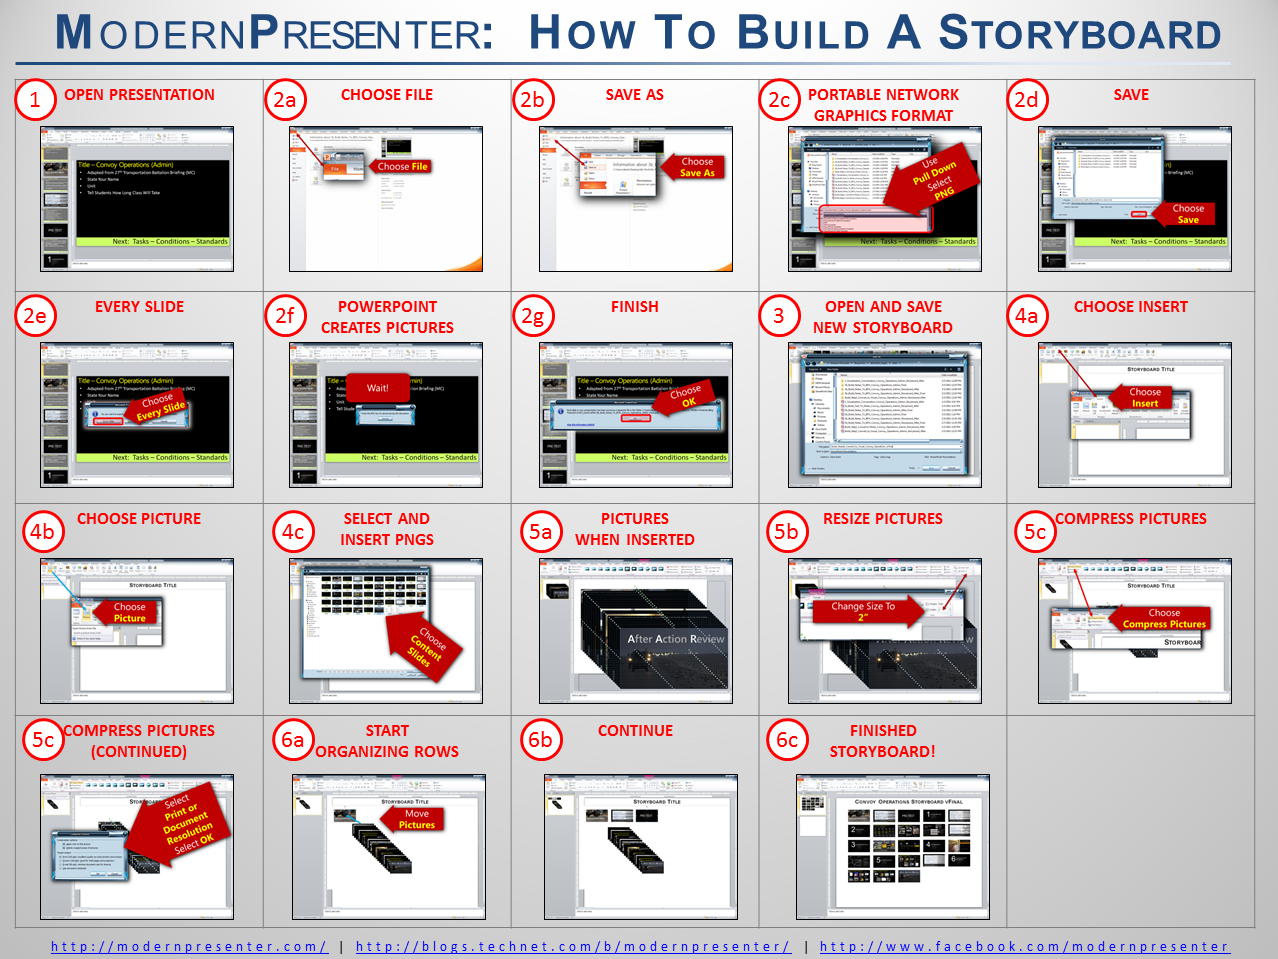 Need to review a powerpoint presentation then build a storyboard need to review a powerpoint presentation then build a storyboard using this template alramifo Image collections